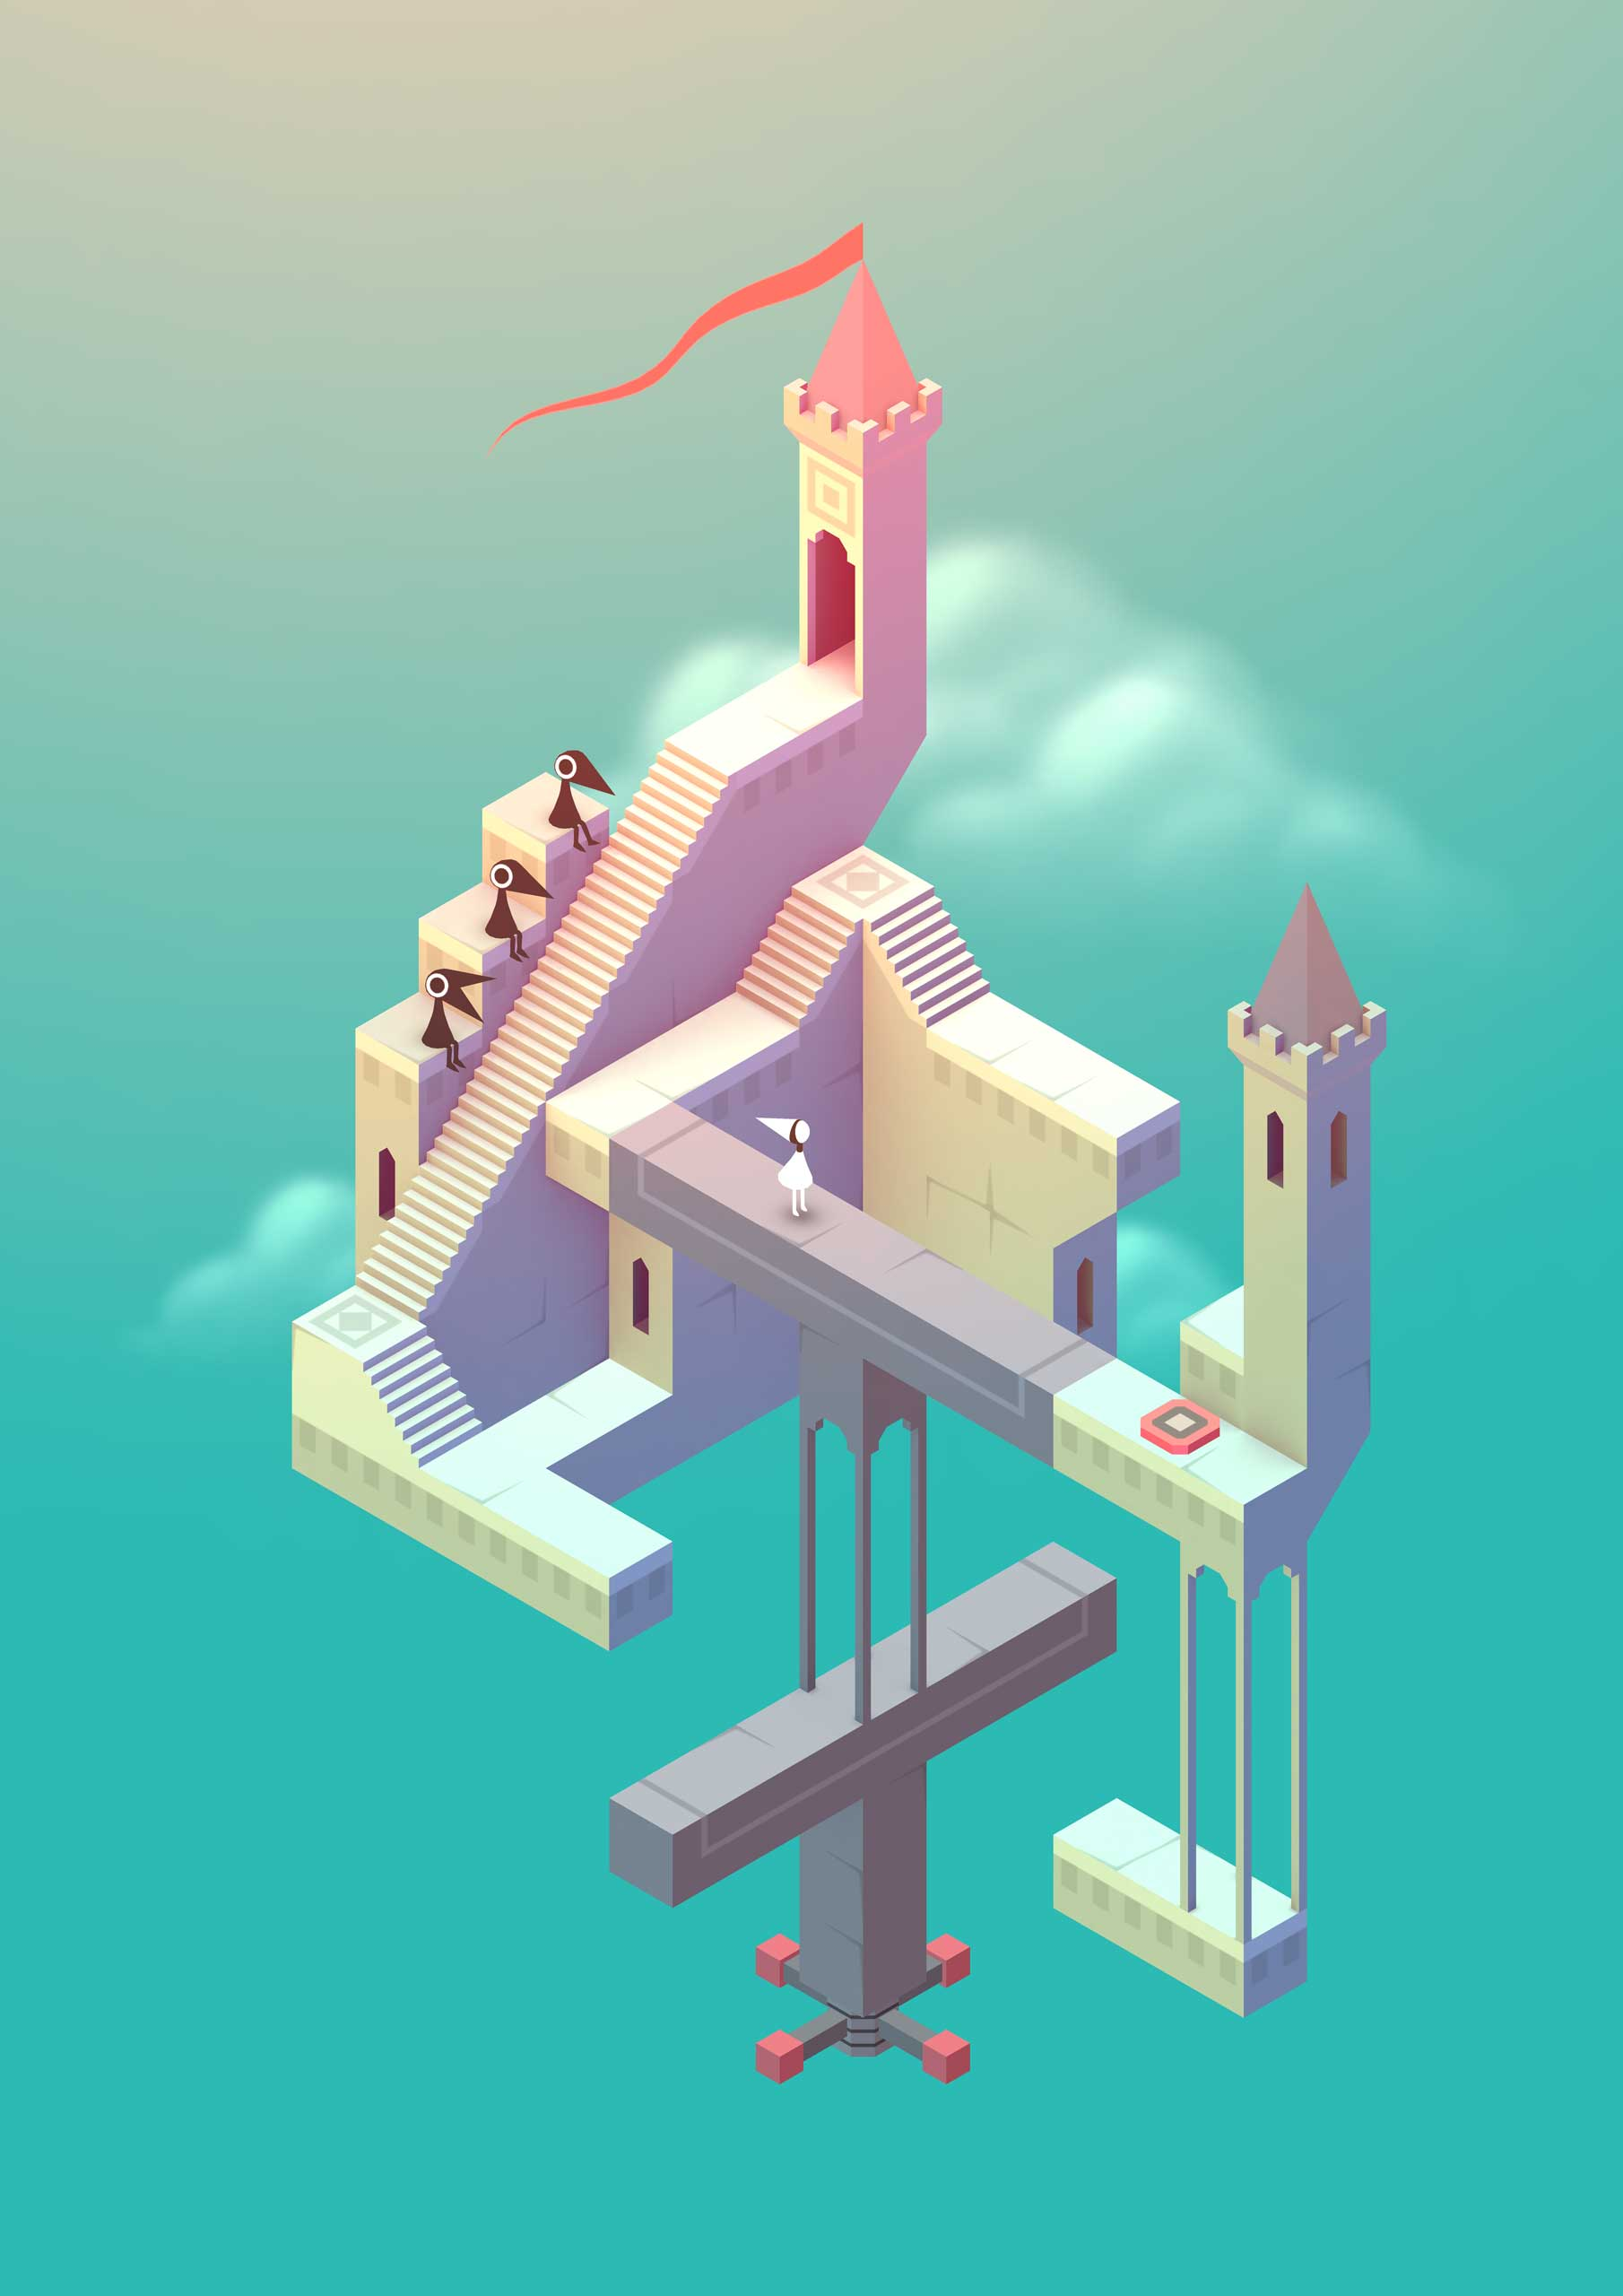 <strong>Monument Valley</strong>                                                                      Escher-like at first glance, Ustwo's mind-bending puzzler was also inspired by posters, bonsai plants, arabic calligraphy and filmmaker Tarsem Singh's <i>The Fall</i>.